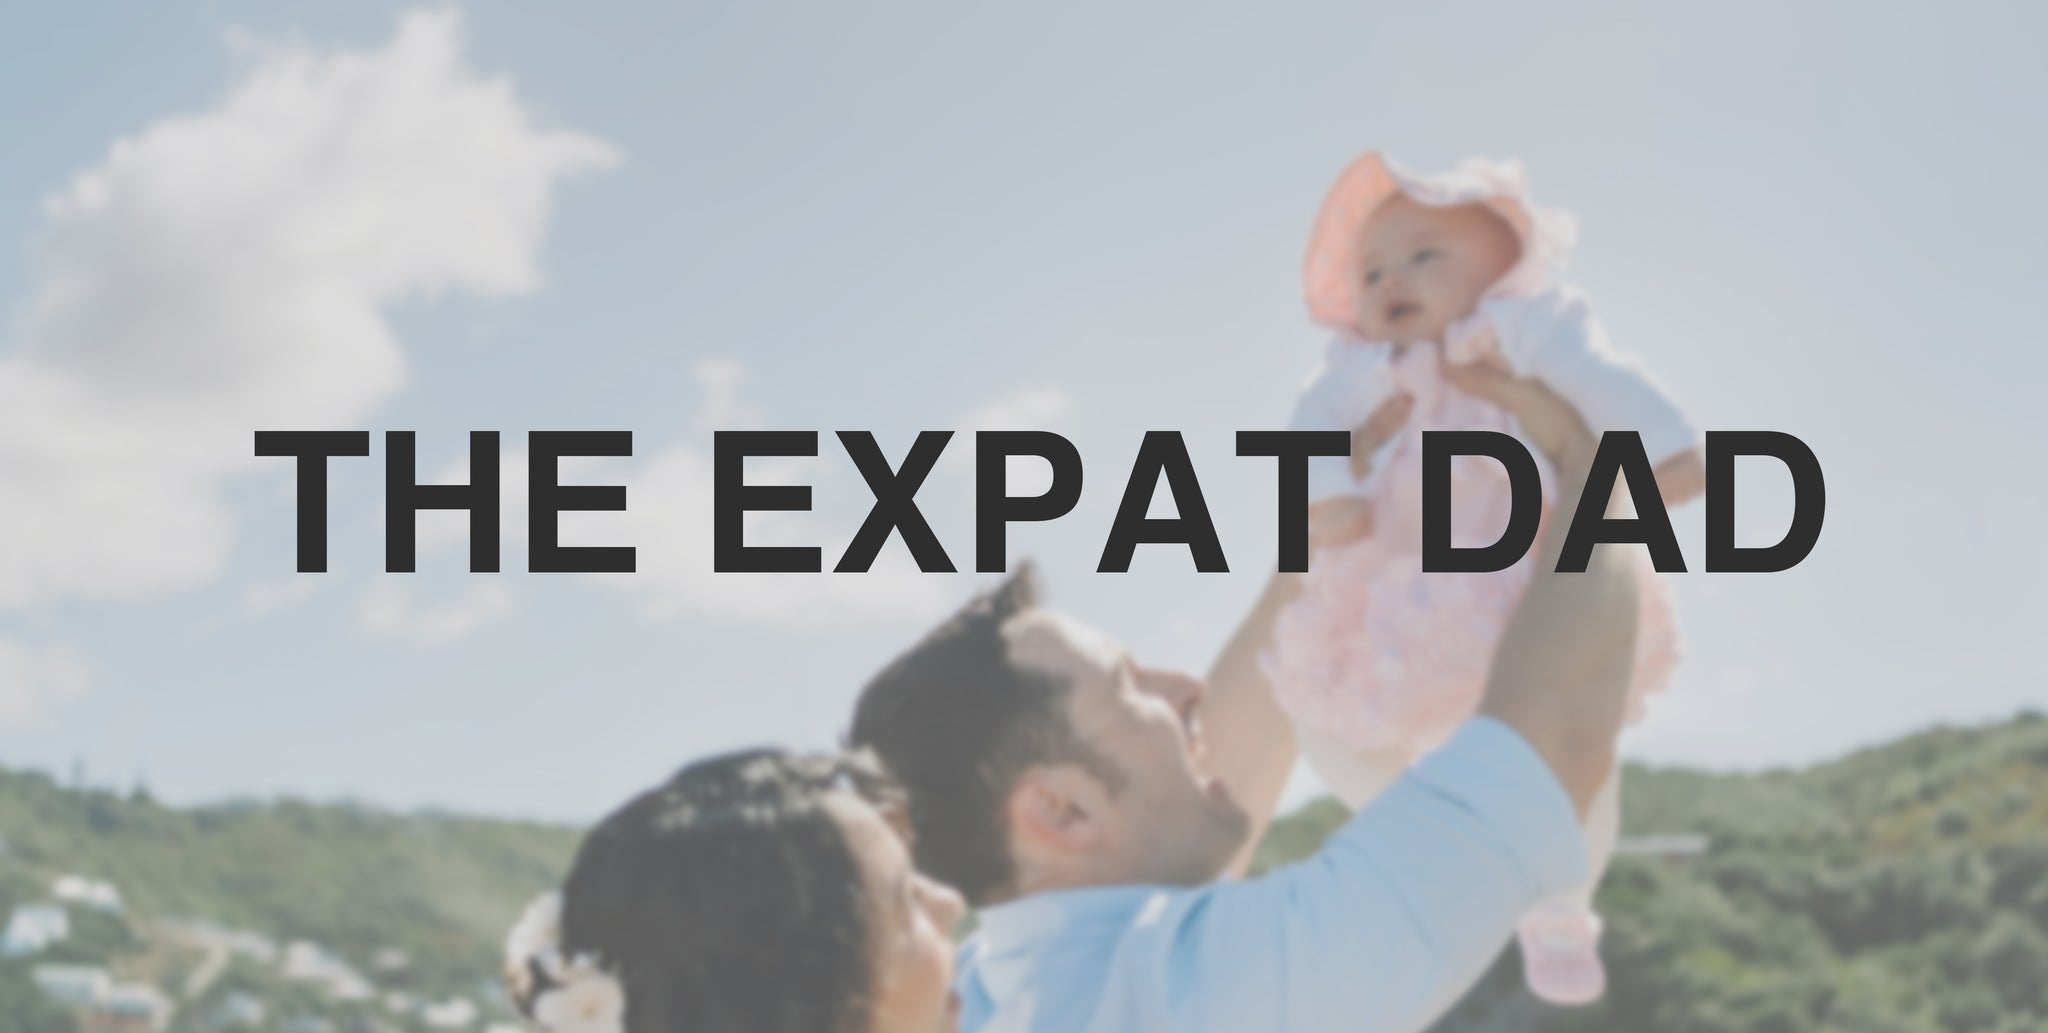 The Expat Dad